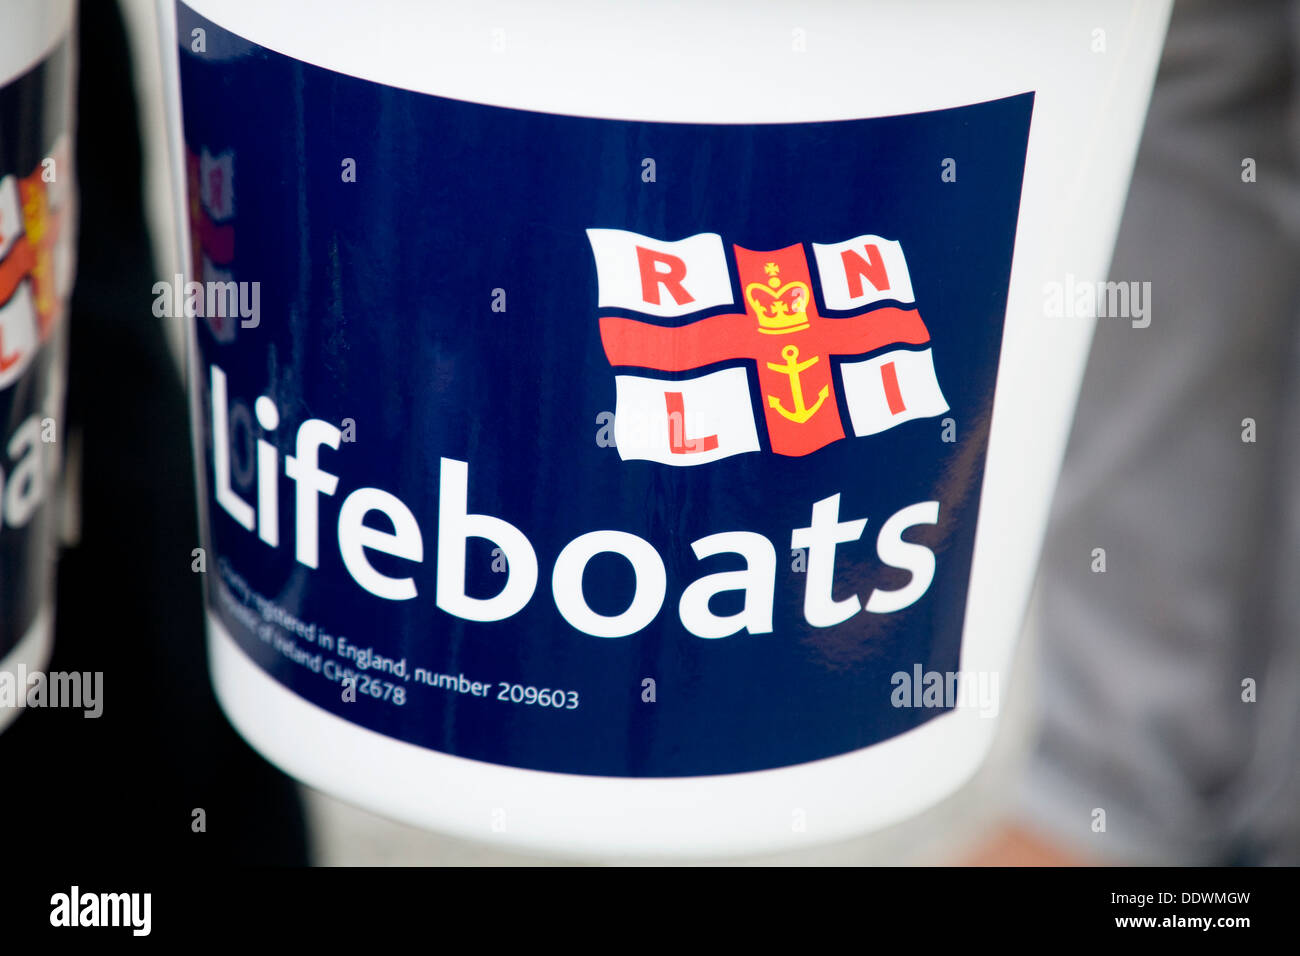 Charities collector / charity collectors collection box / boxes to collect for / collecting for the RNLI / Royal National. UK. - Stock Image